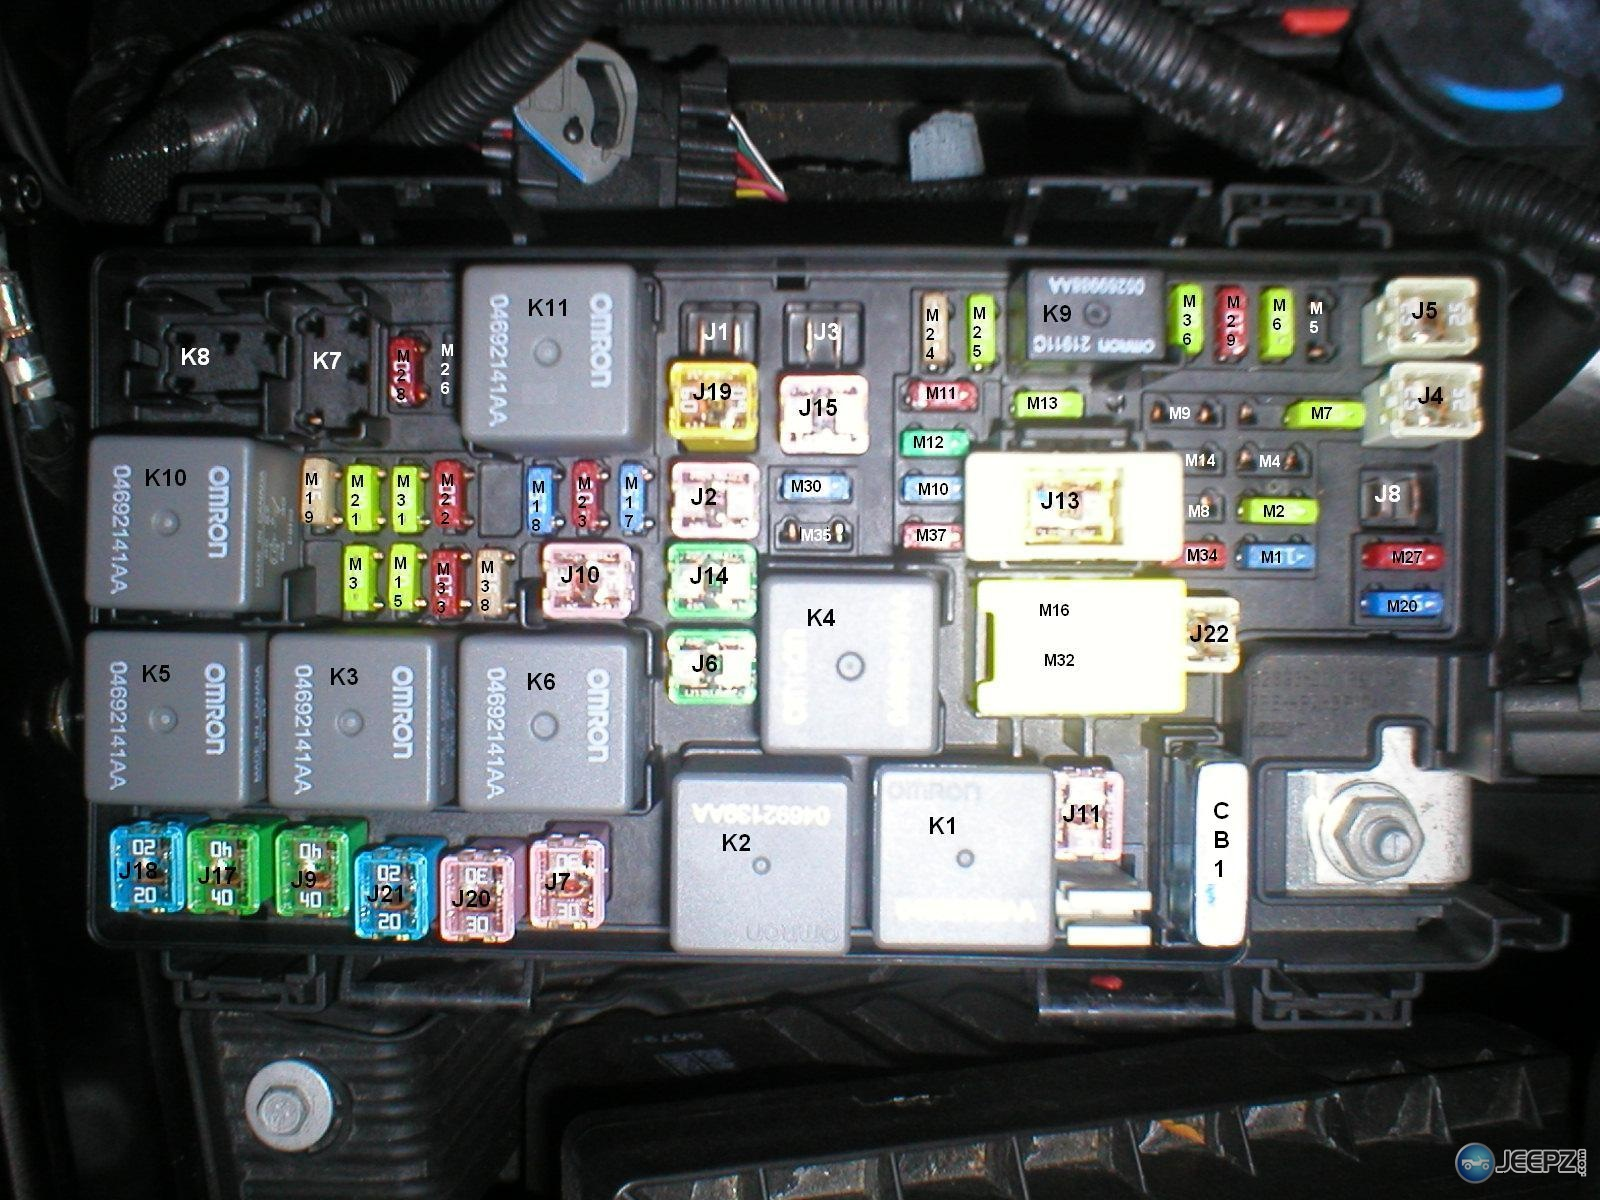 4488d1265060159-jeep-jk-2009-fuse-map-layout-diagram-jkfusebox2009 Where Is The Fuse Box On Jeep Wrangler on